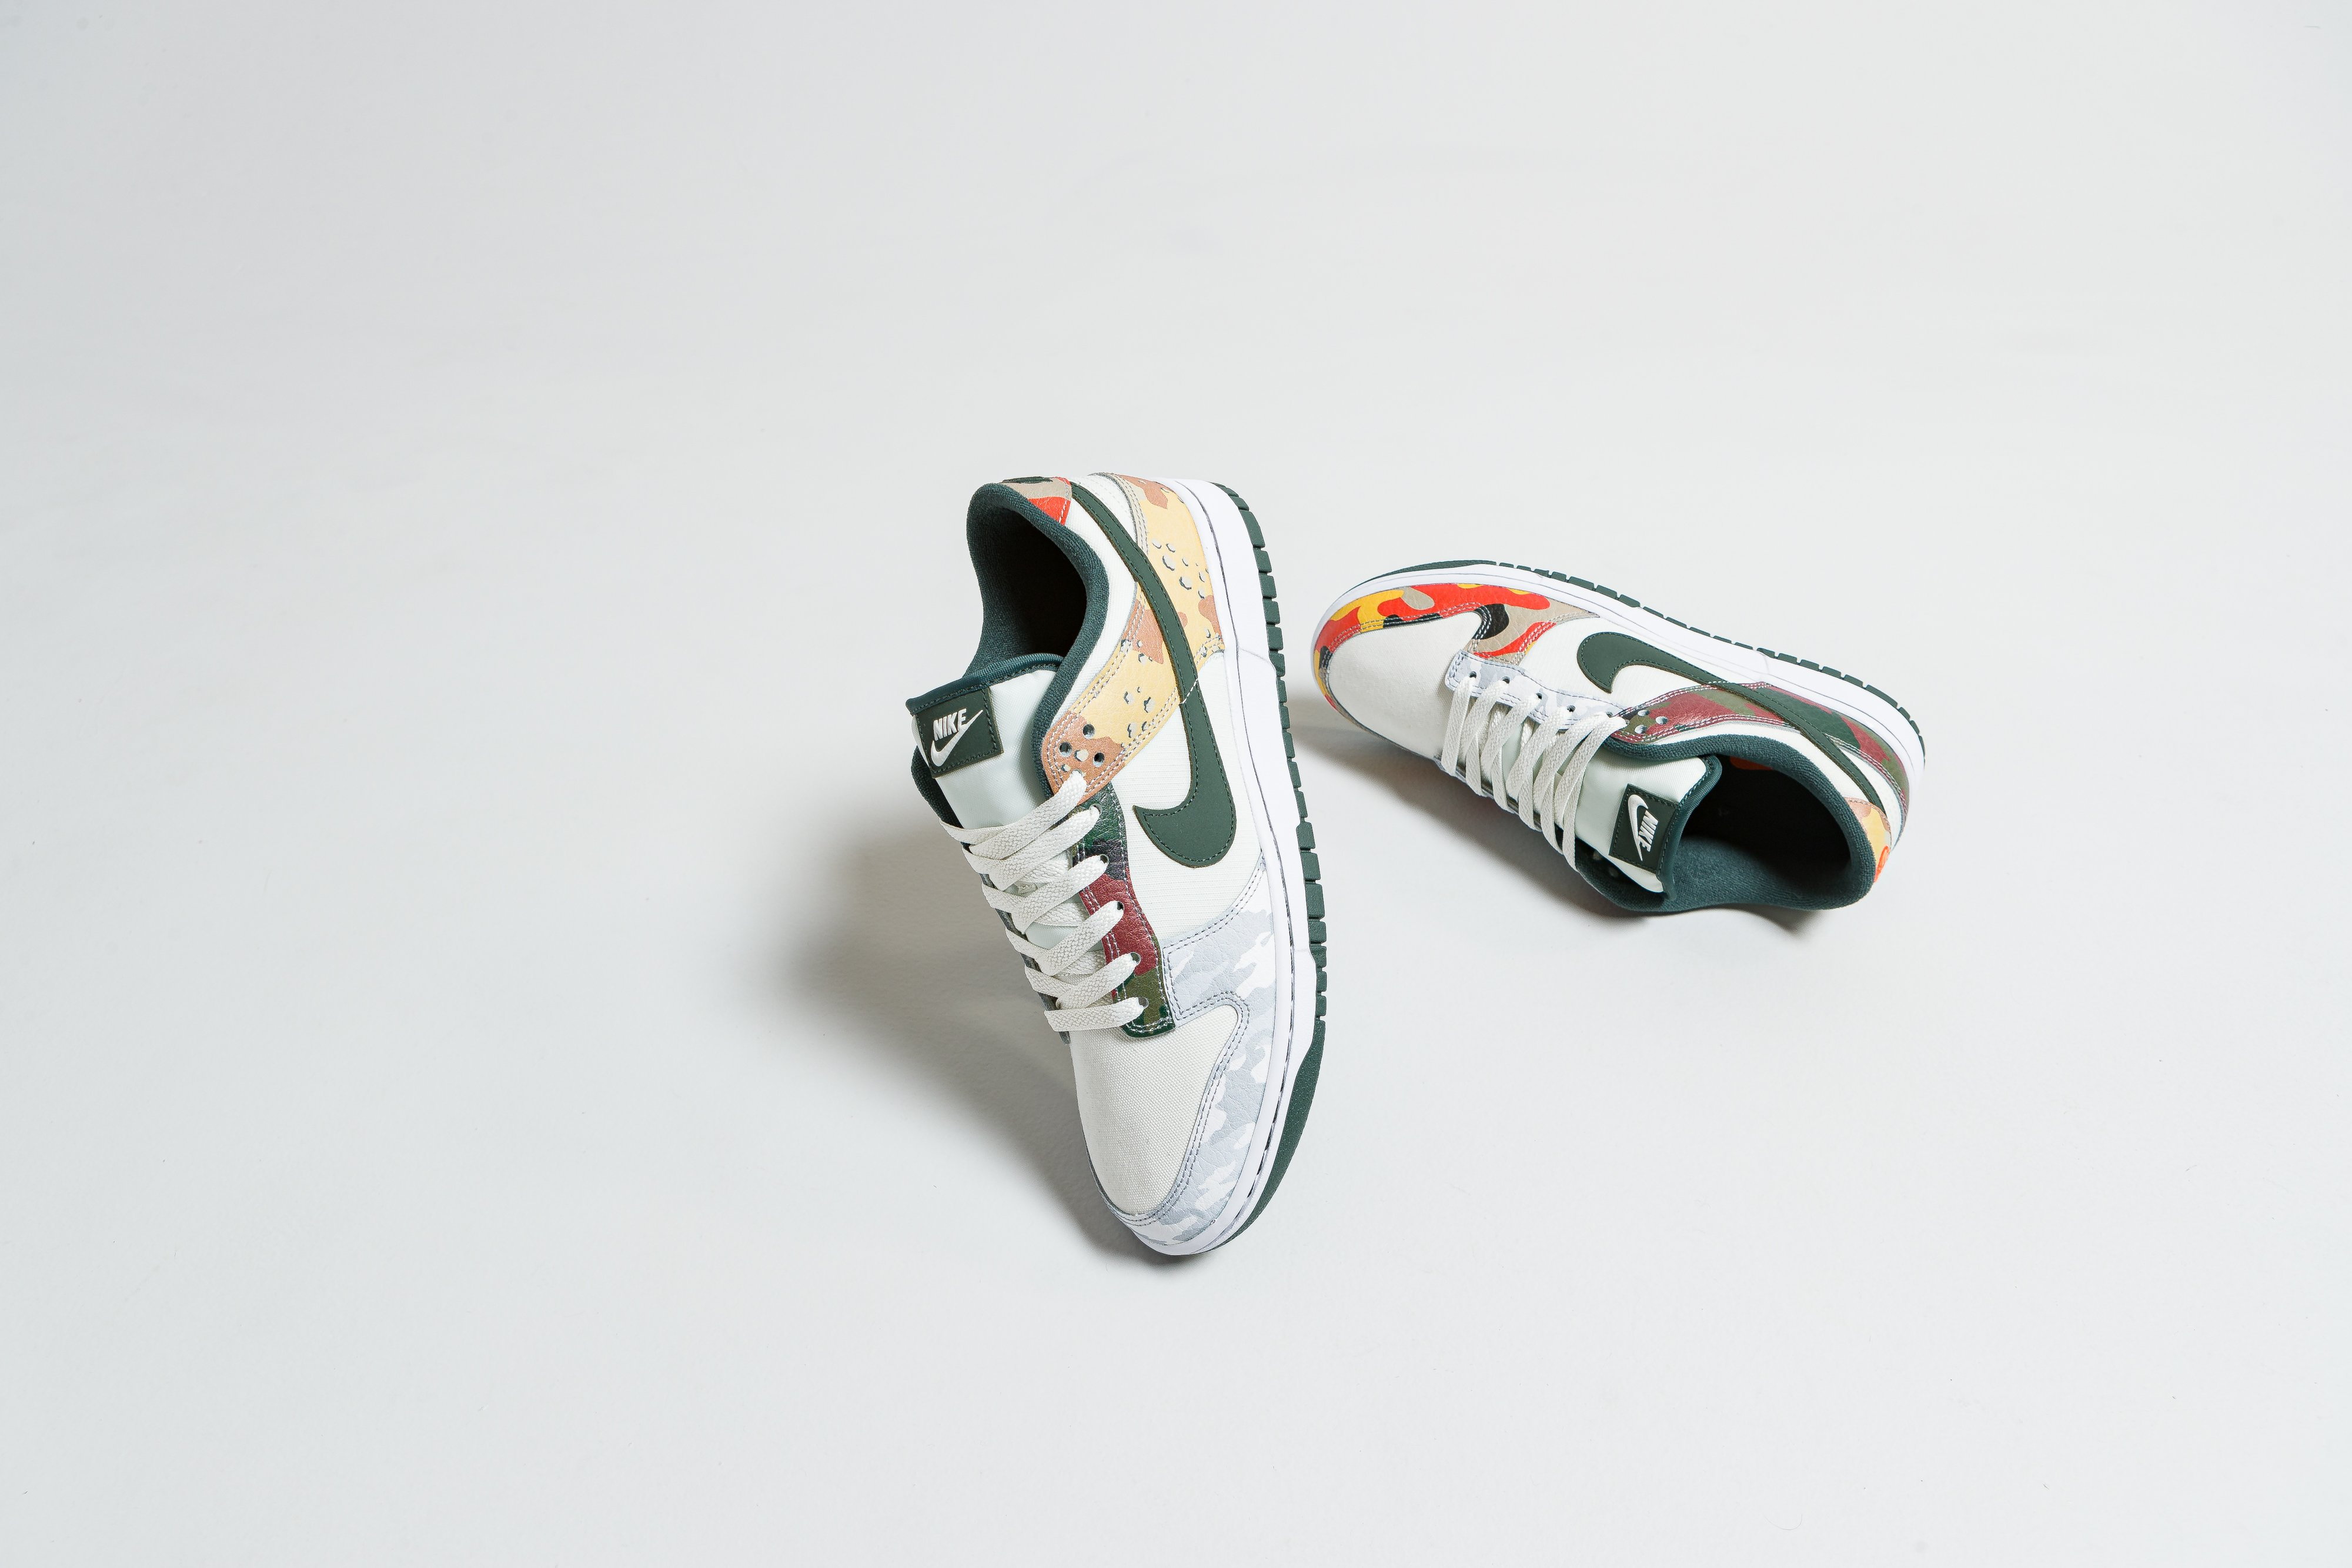 Nike - Dunk Low SE - Sail/Vintage Green - Up There